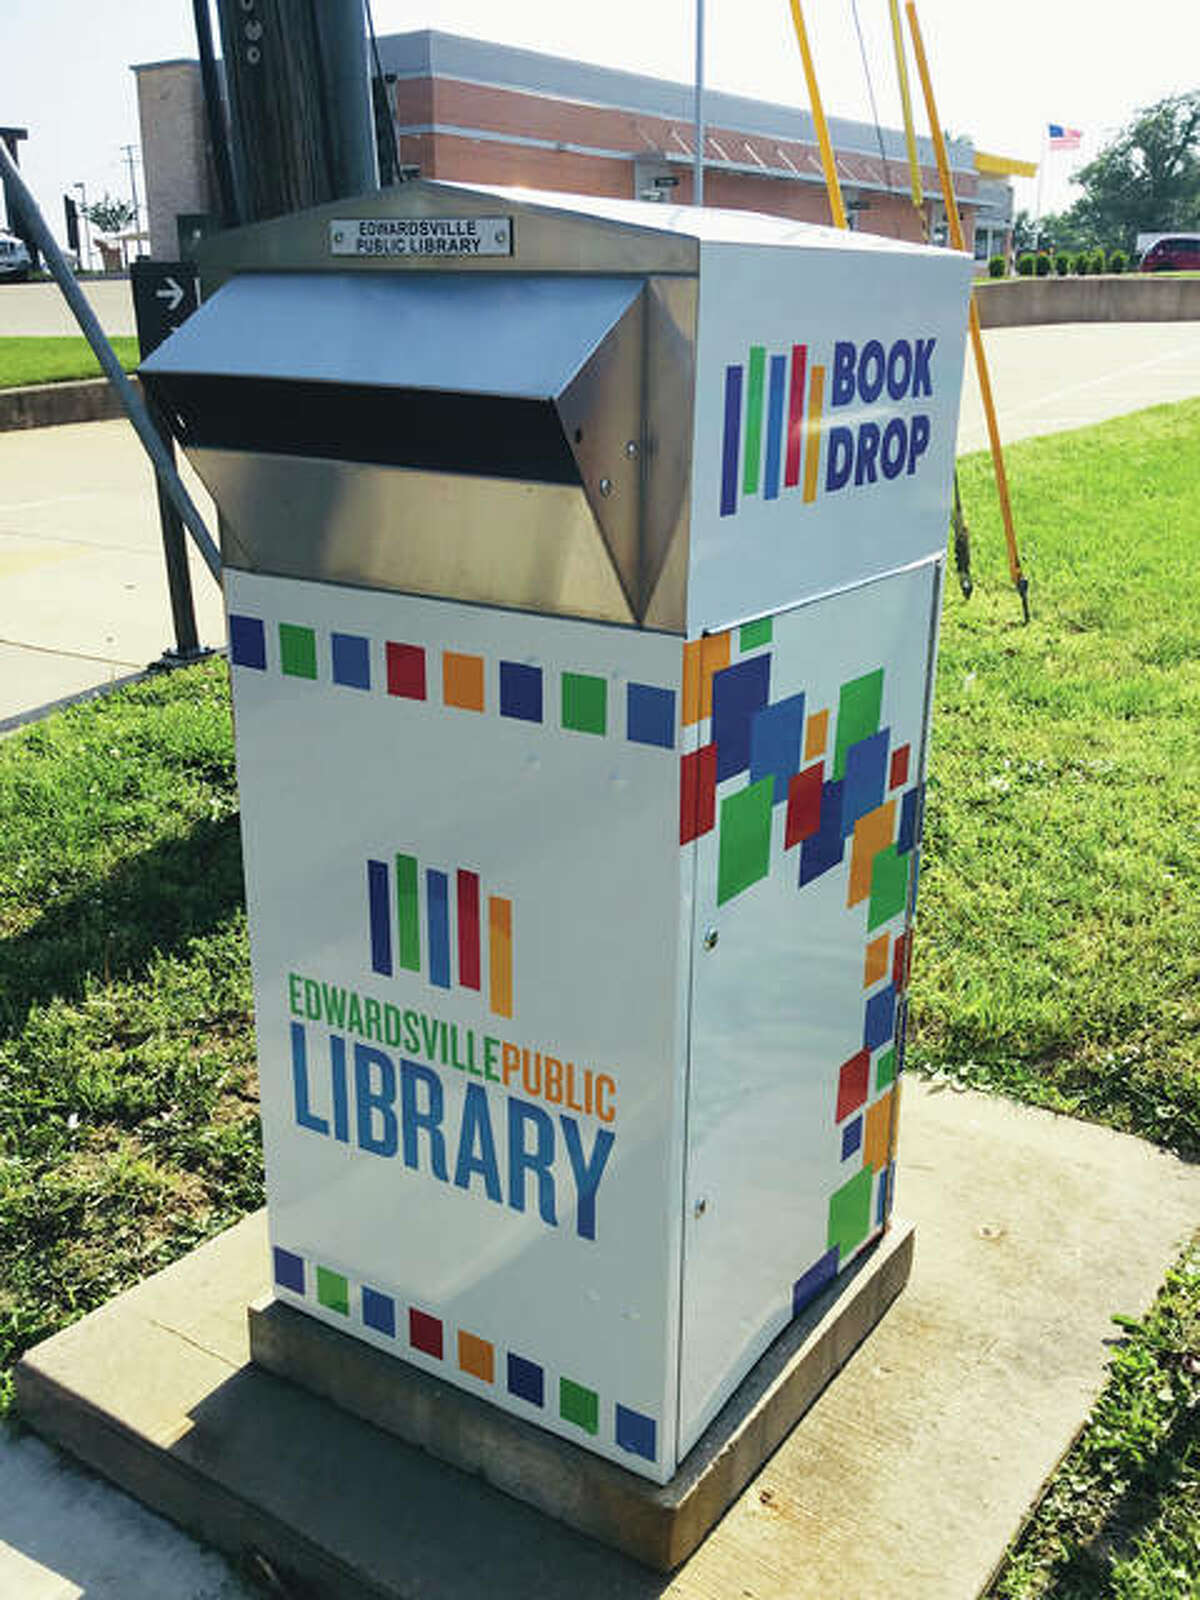 The Edwardsville Public Library's Montclaire book drop features a new vinyl wrap imprinted with the library's new logo. The library has five book drops located in the city of Edwardsville, making it more convenient for patrons to return material.